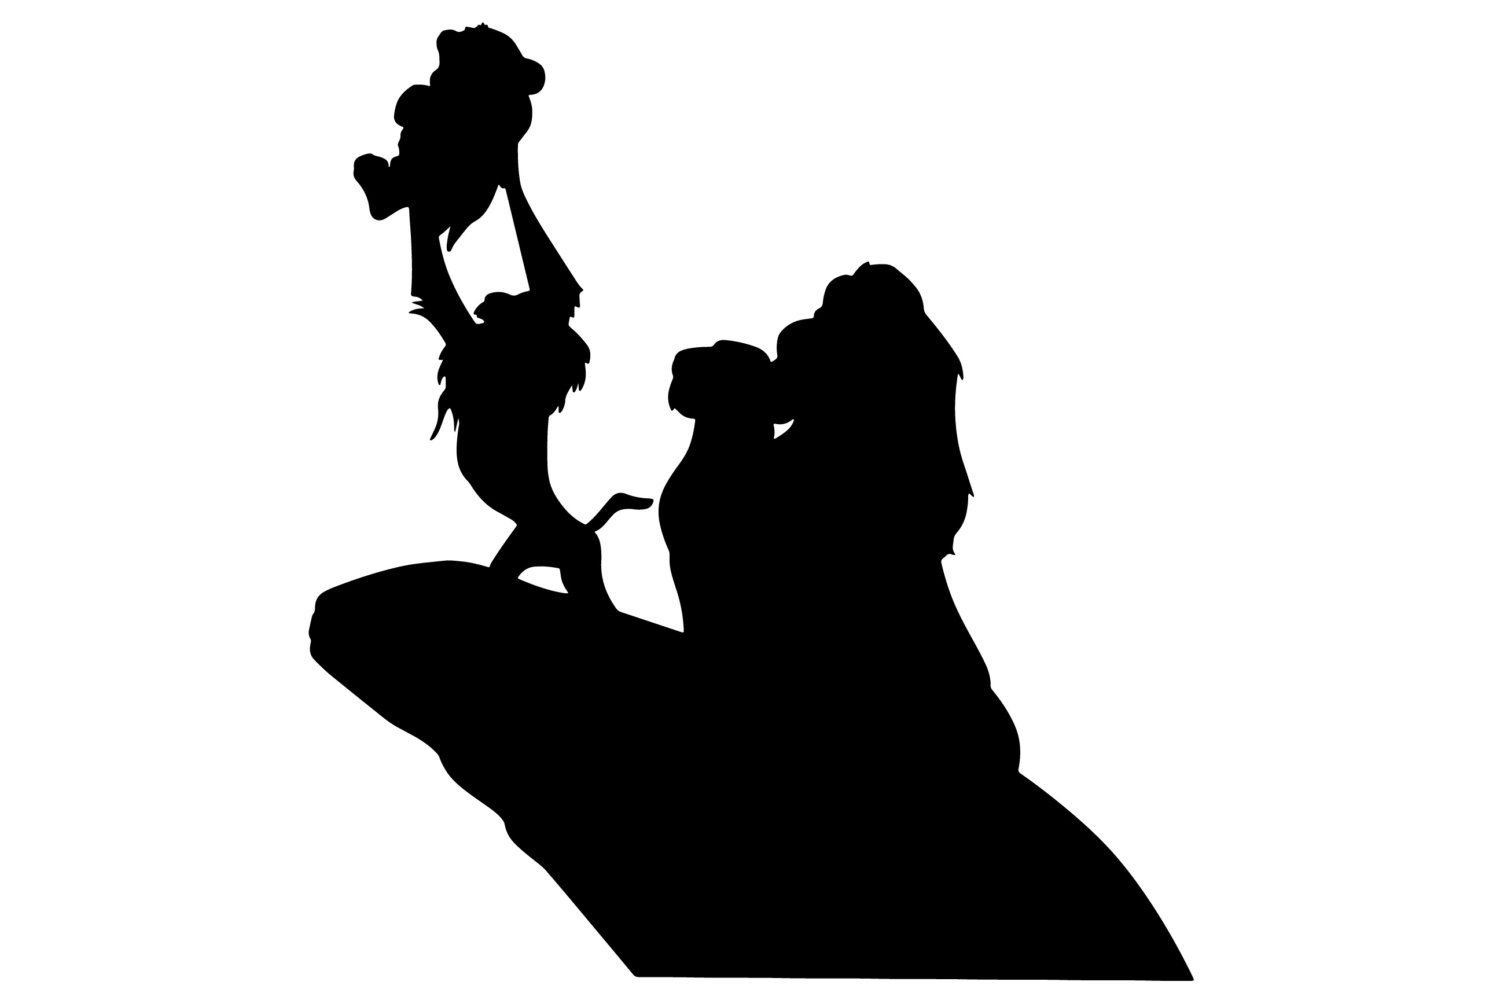 73854f3f16f60 The best free Hakuna silhouette images. Download from 37 free ...